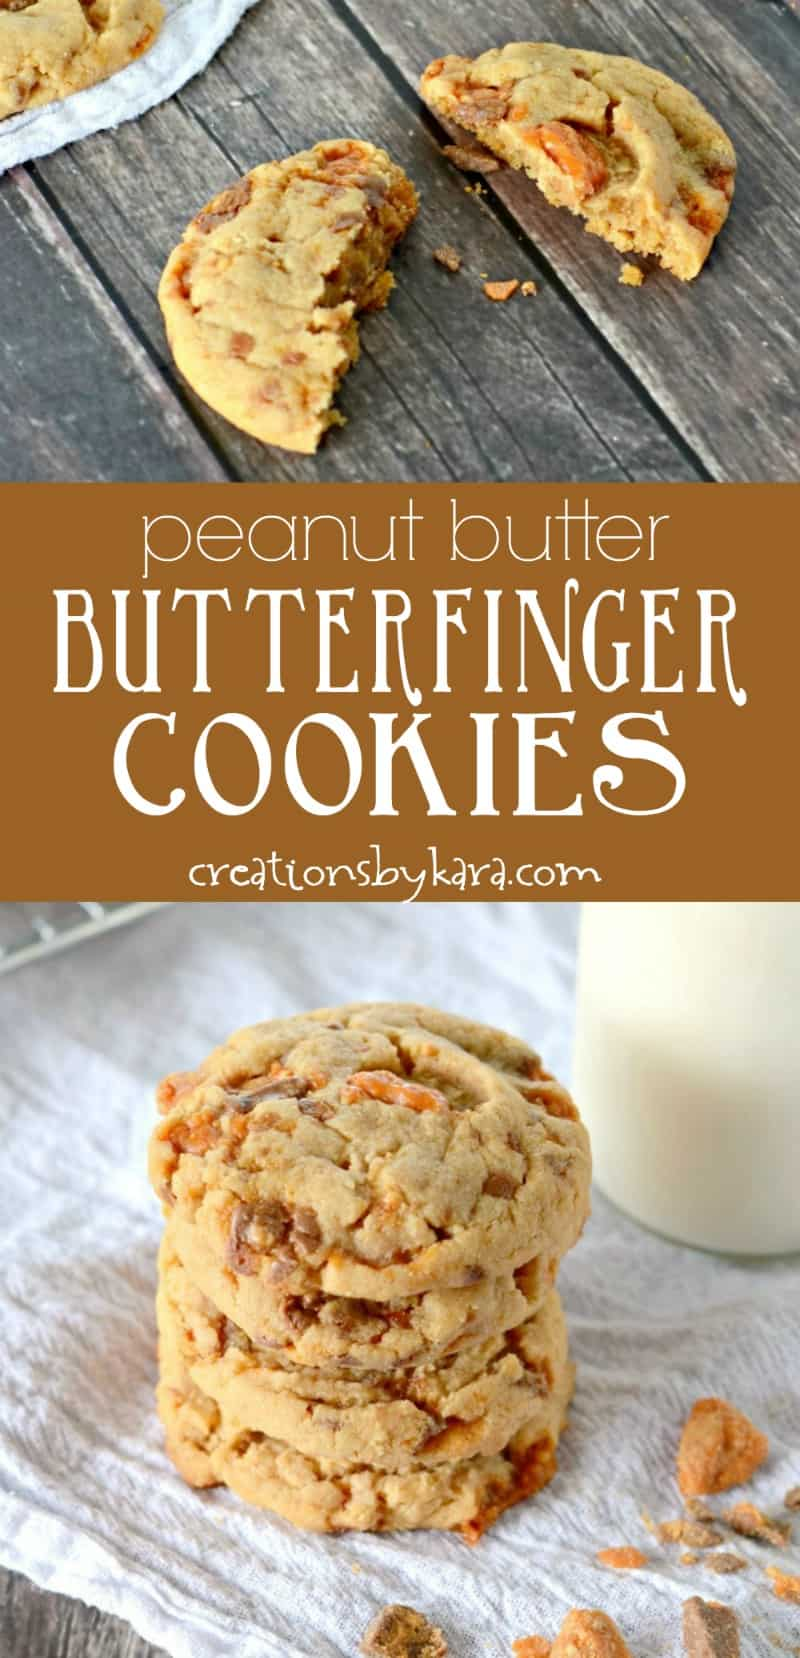 Peanut Butter Butterfinger Cookies - Creations by Kara